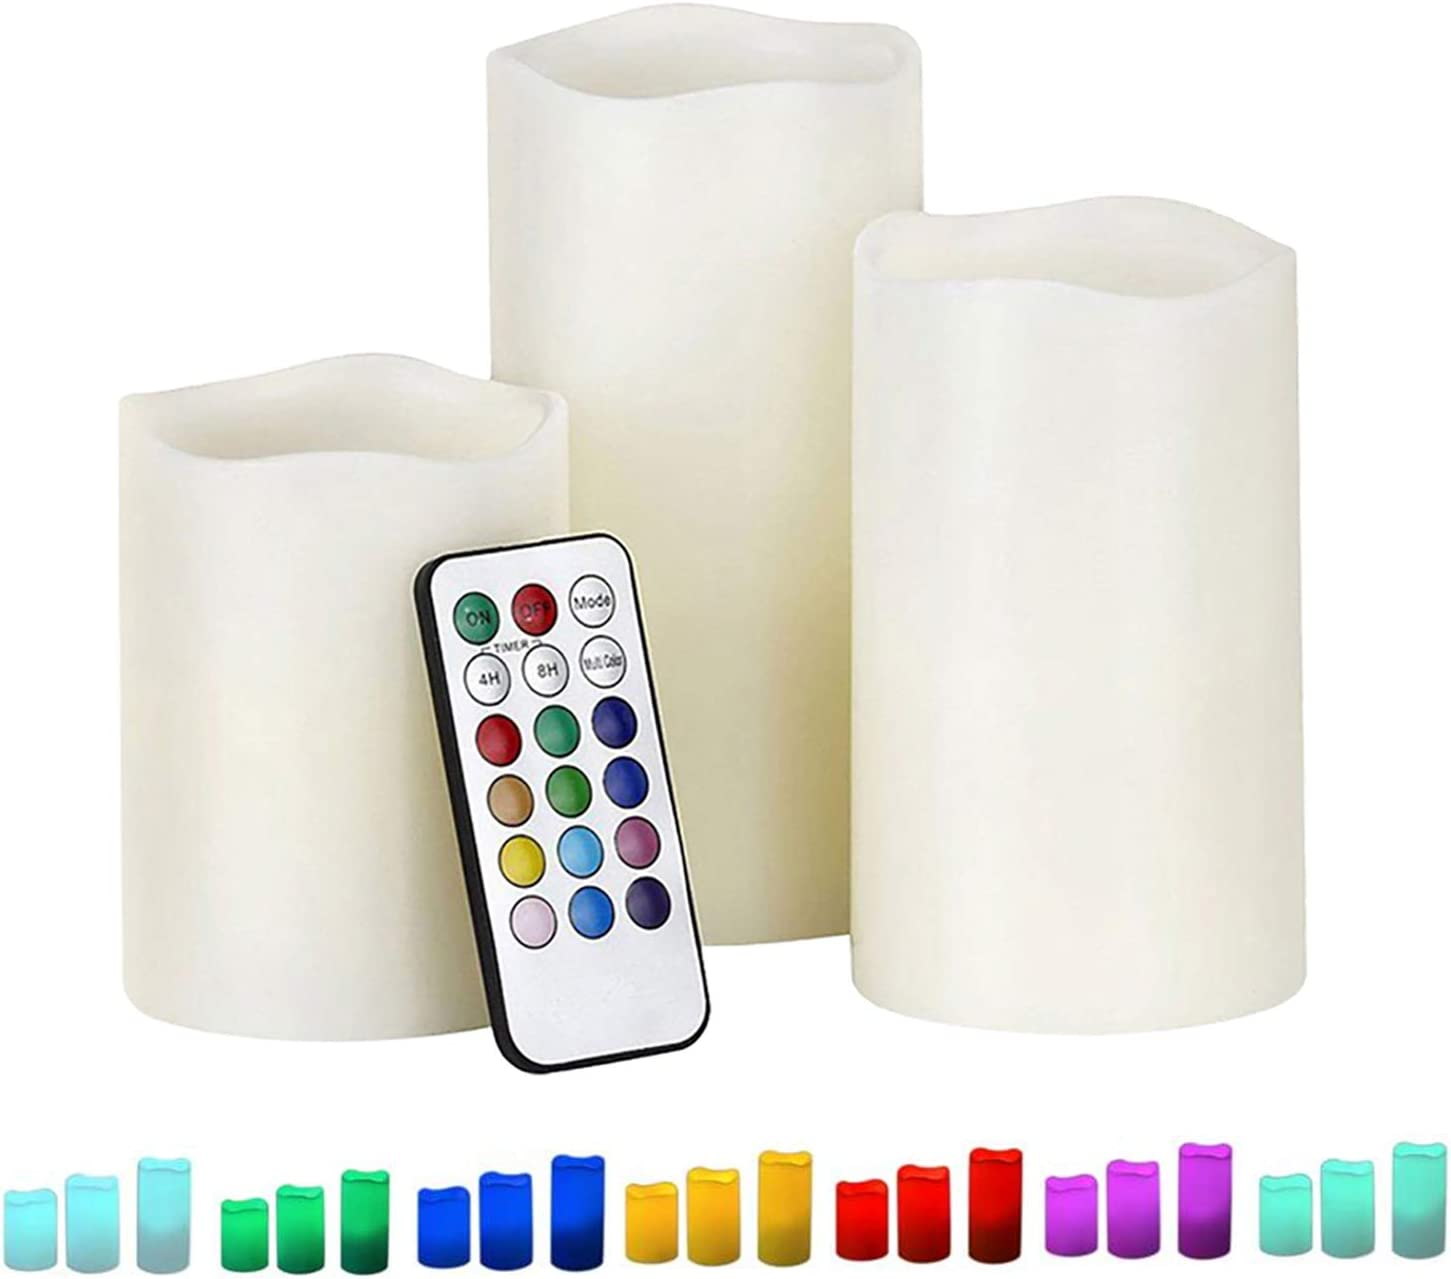 Dreamiracle LED Candle Lights Set of 3 12 Colours Changing Flameless Candle Battery Operated with 18 Keys Remote Control /& Timer